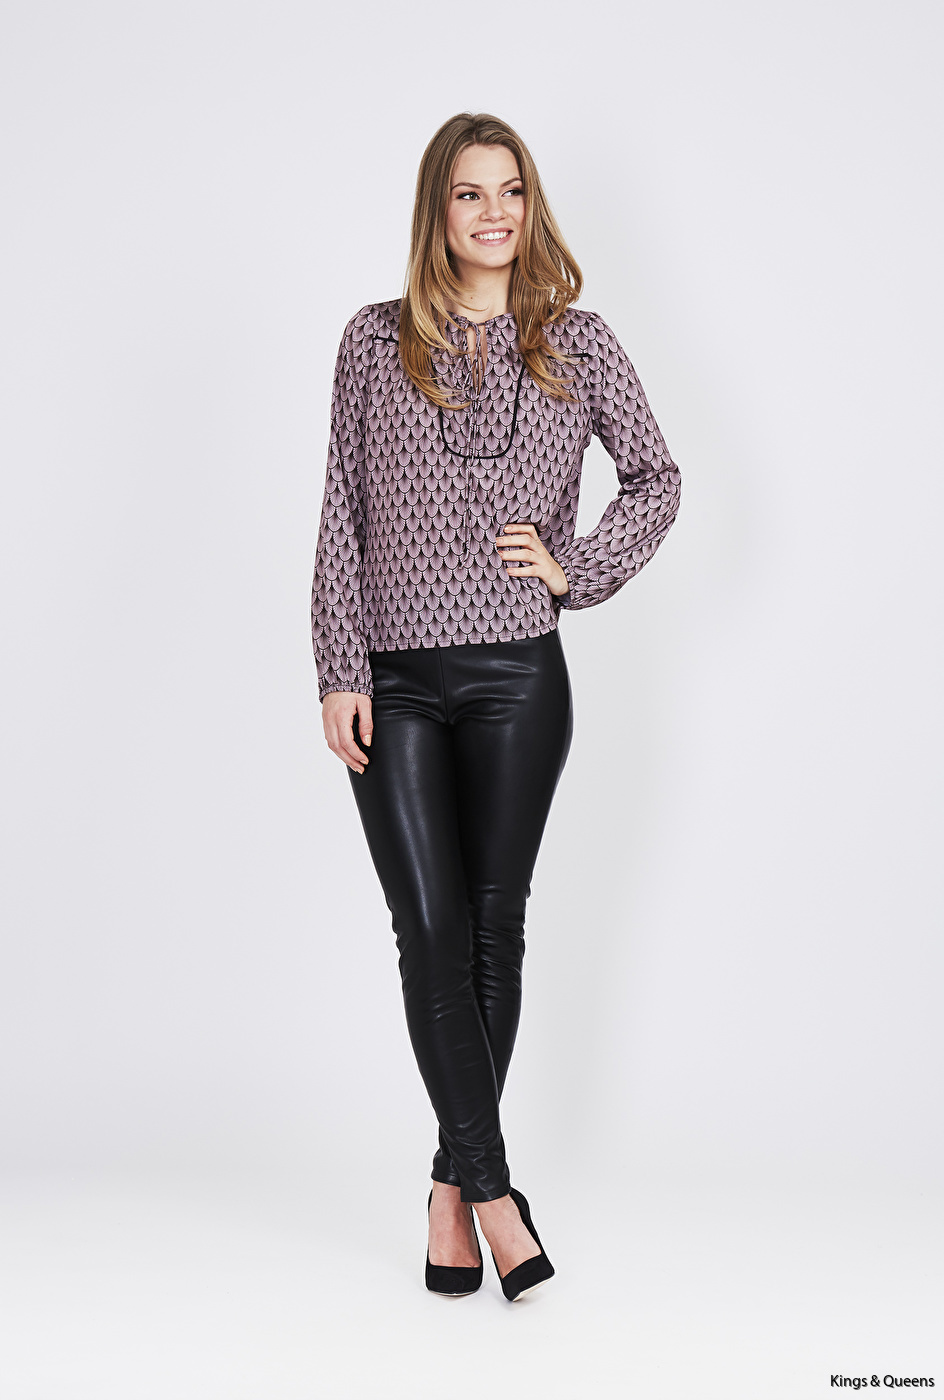 DL-17-07-05-P Shadowy blouse